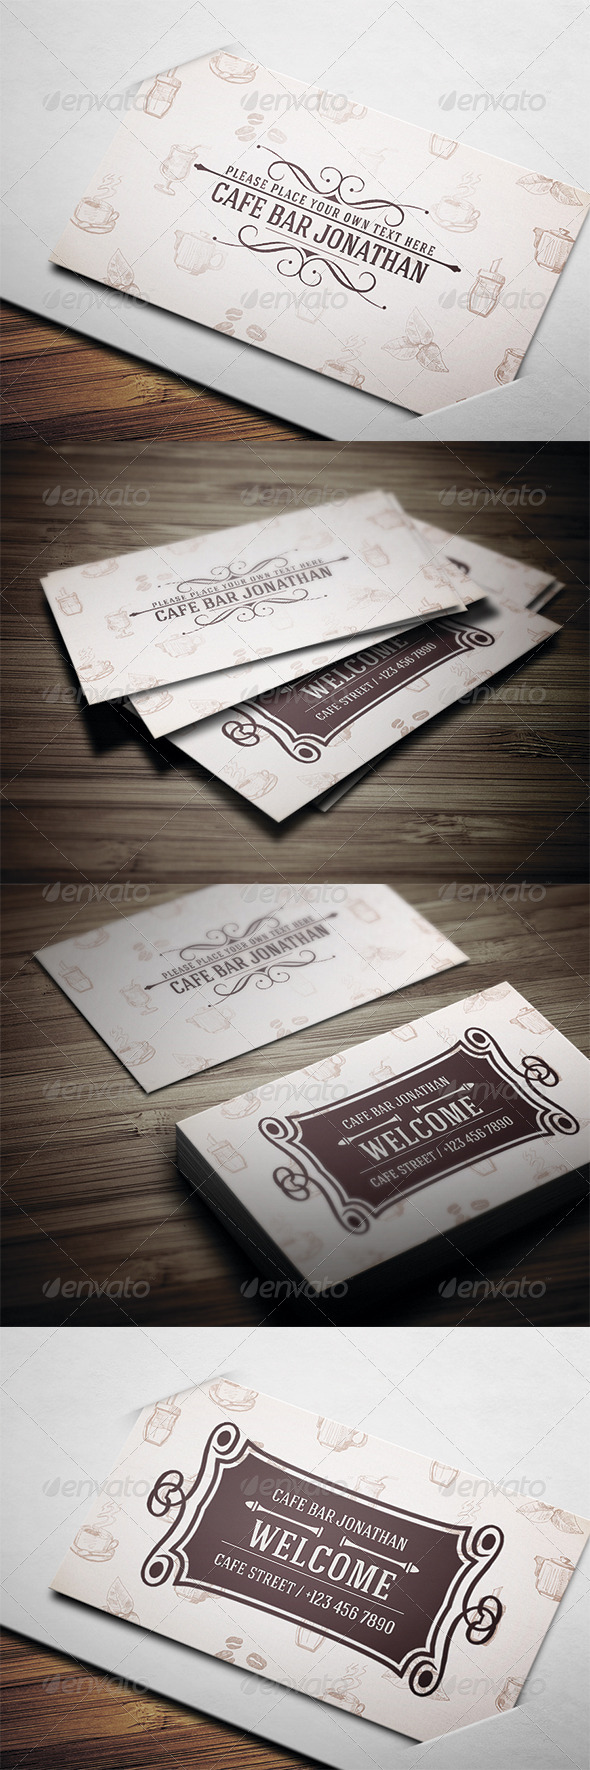 GraphicRiver Cafe Business Card 3544374